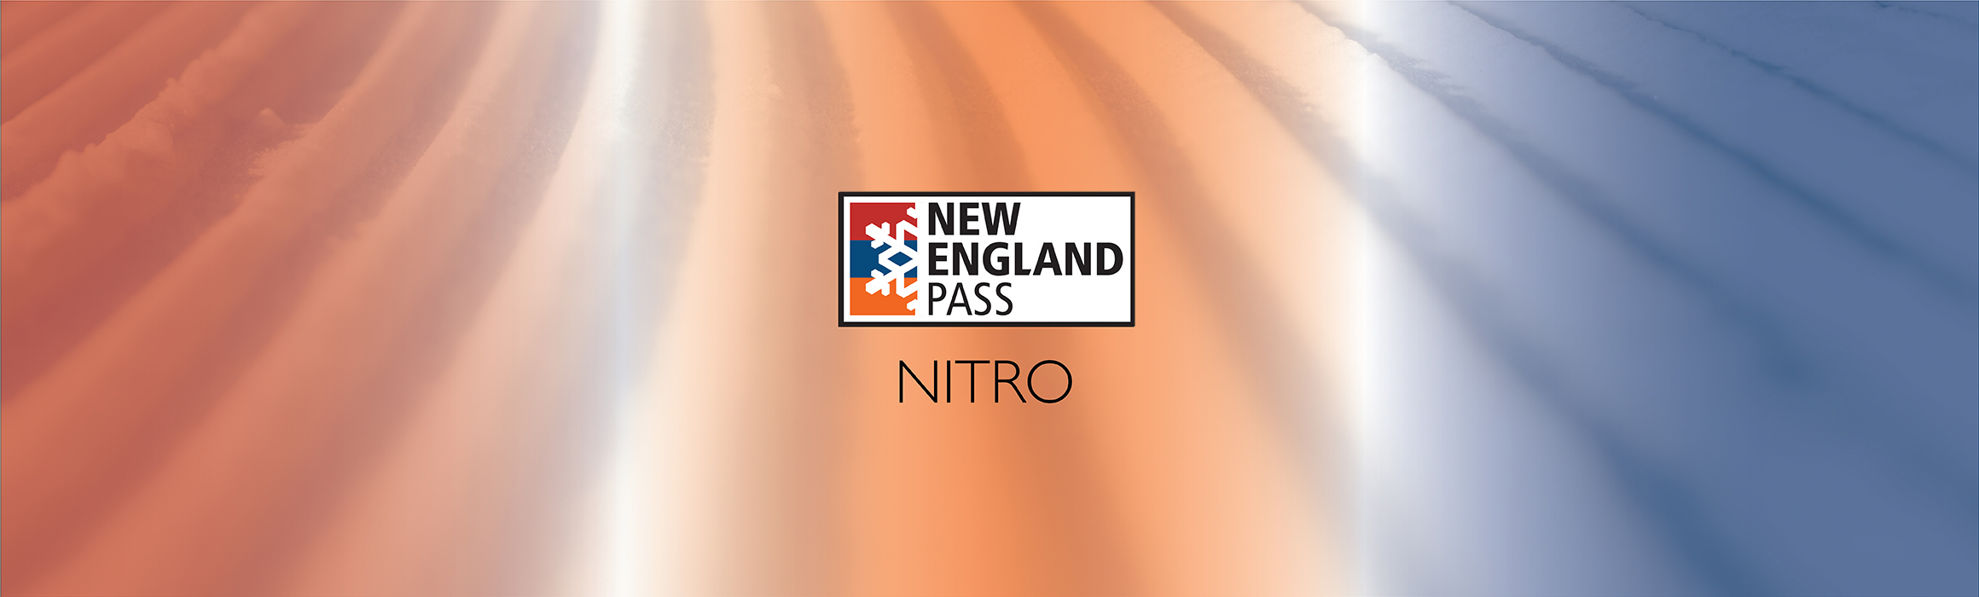 Picture of Nitro Pass